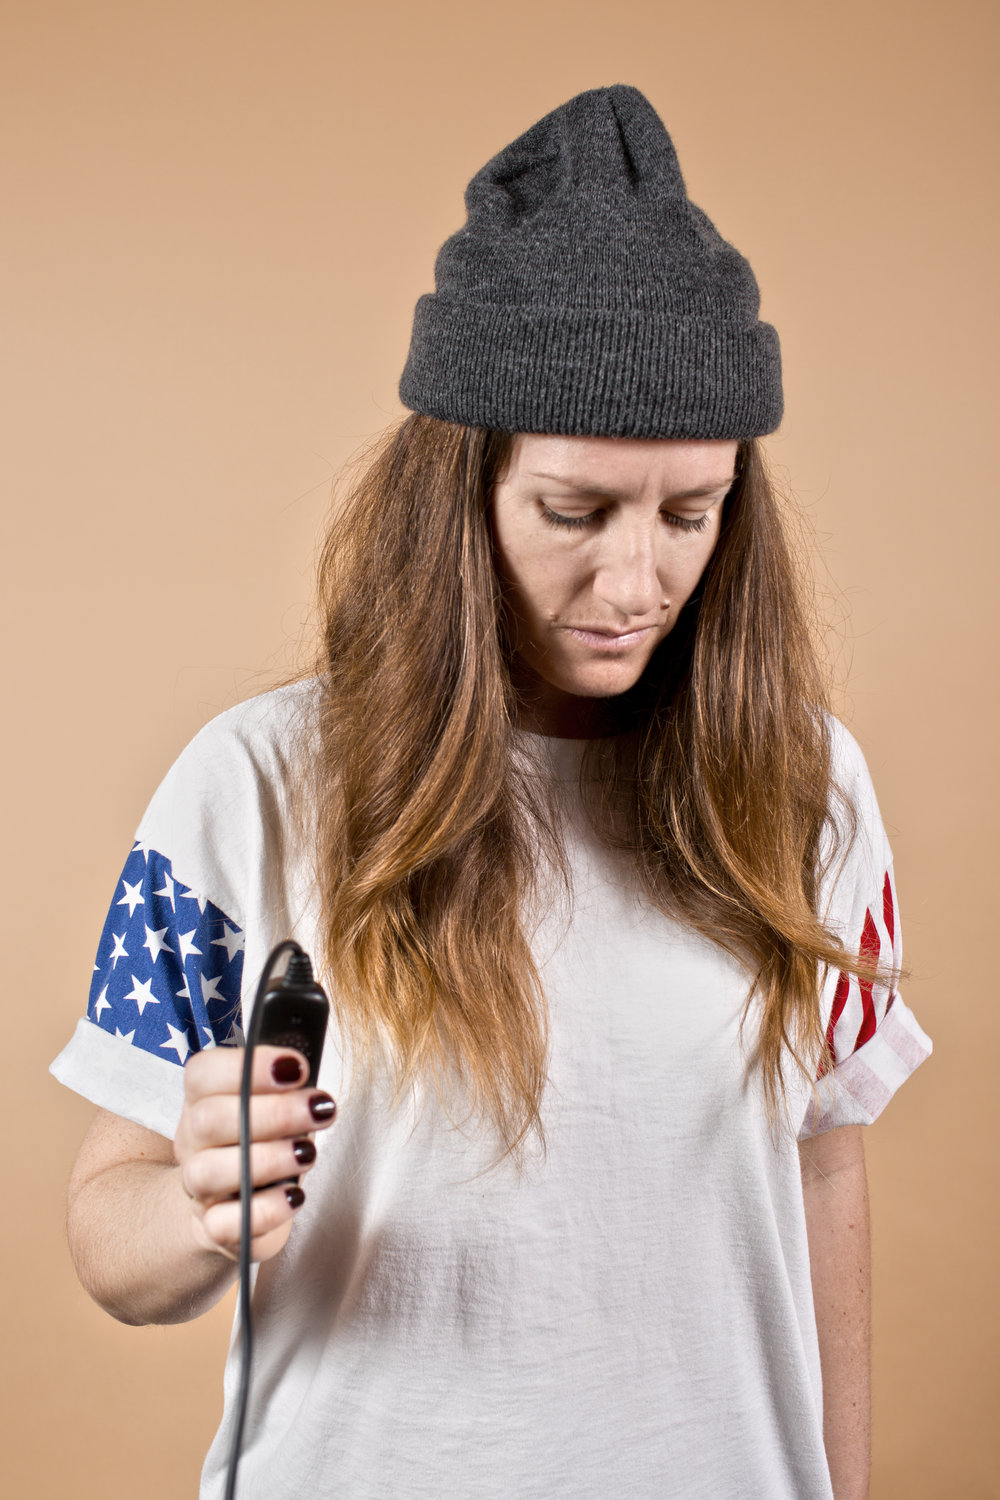 Self-Portrait with Flag Shirt